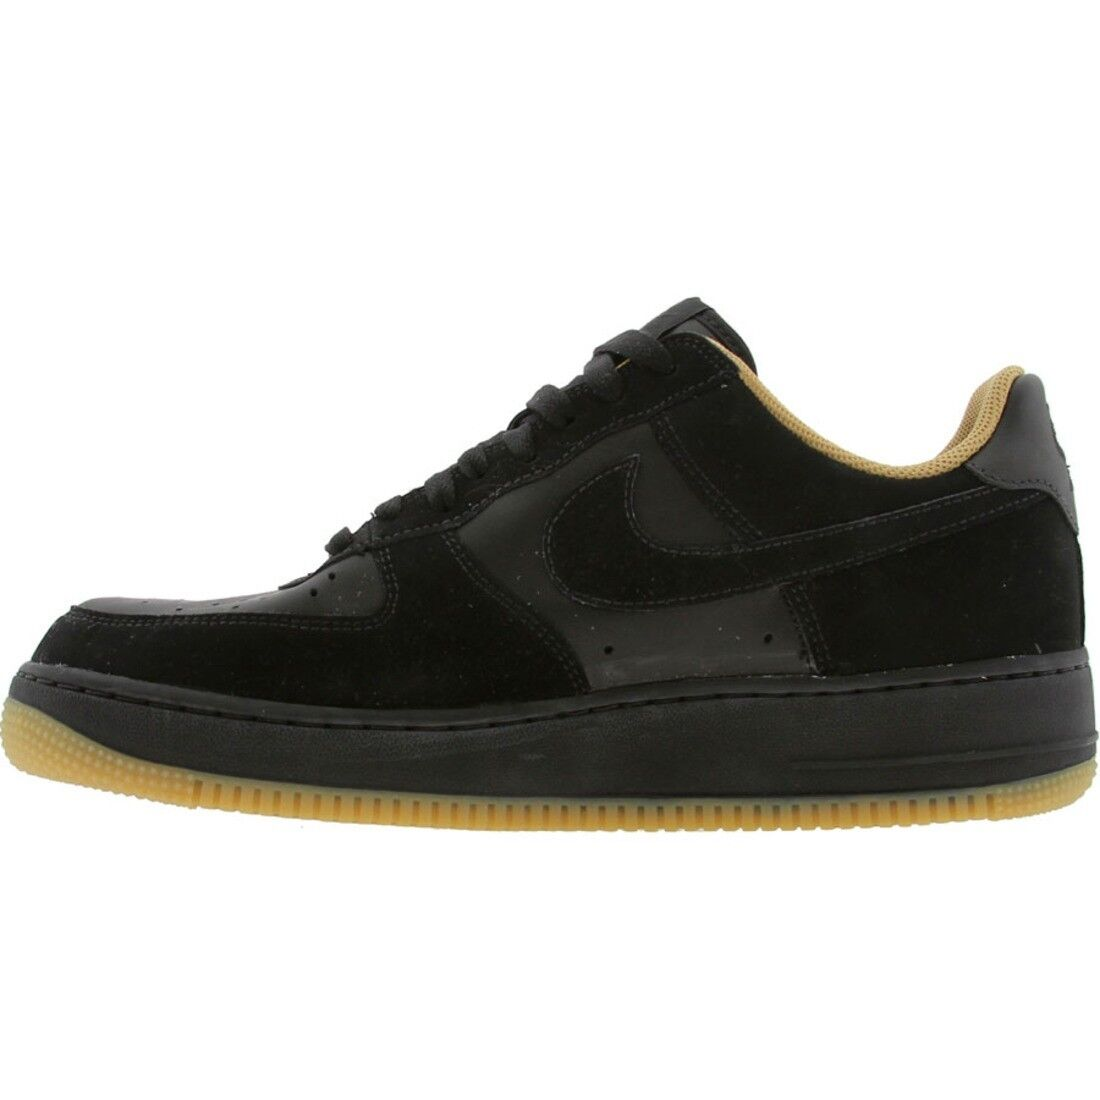 313642-003 Low Nike Air Force 1 Low 313642-003 Noir Gold c412cb